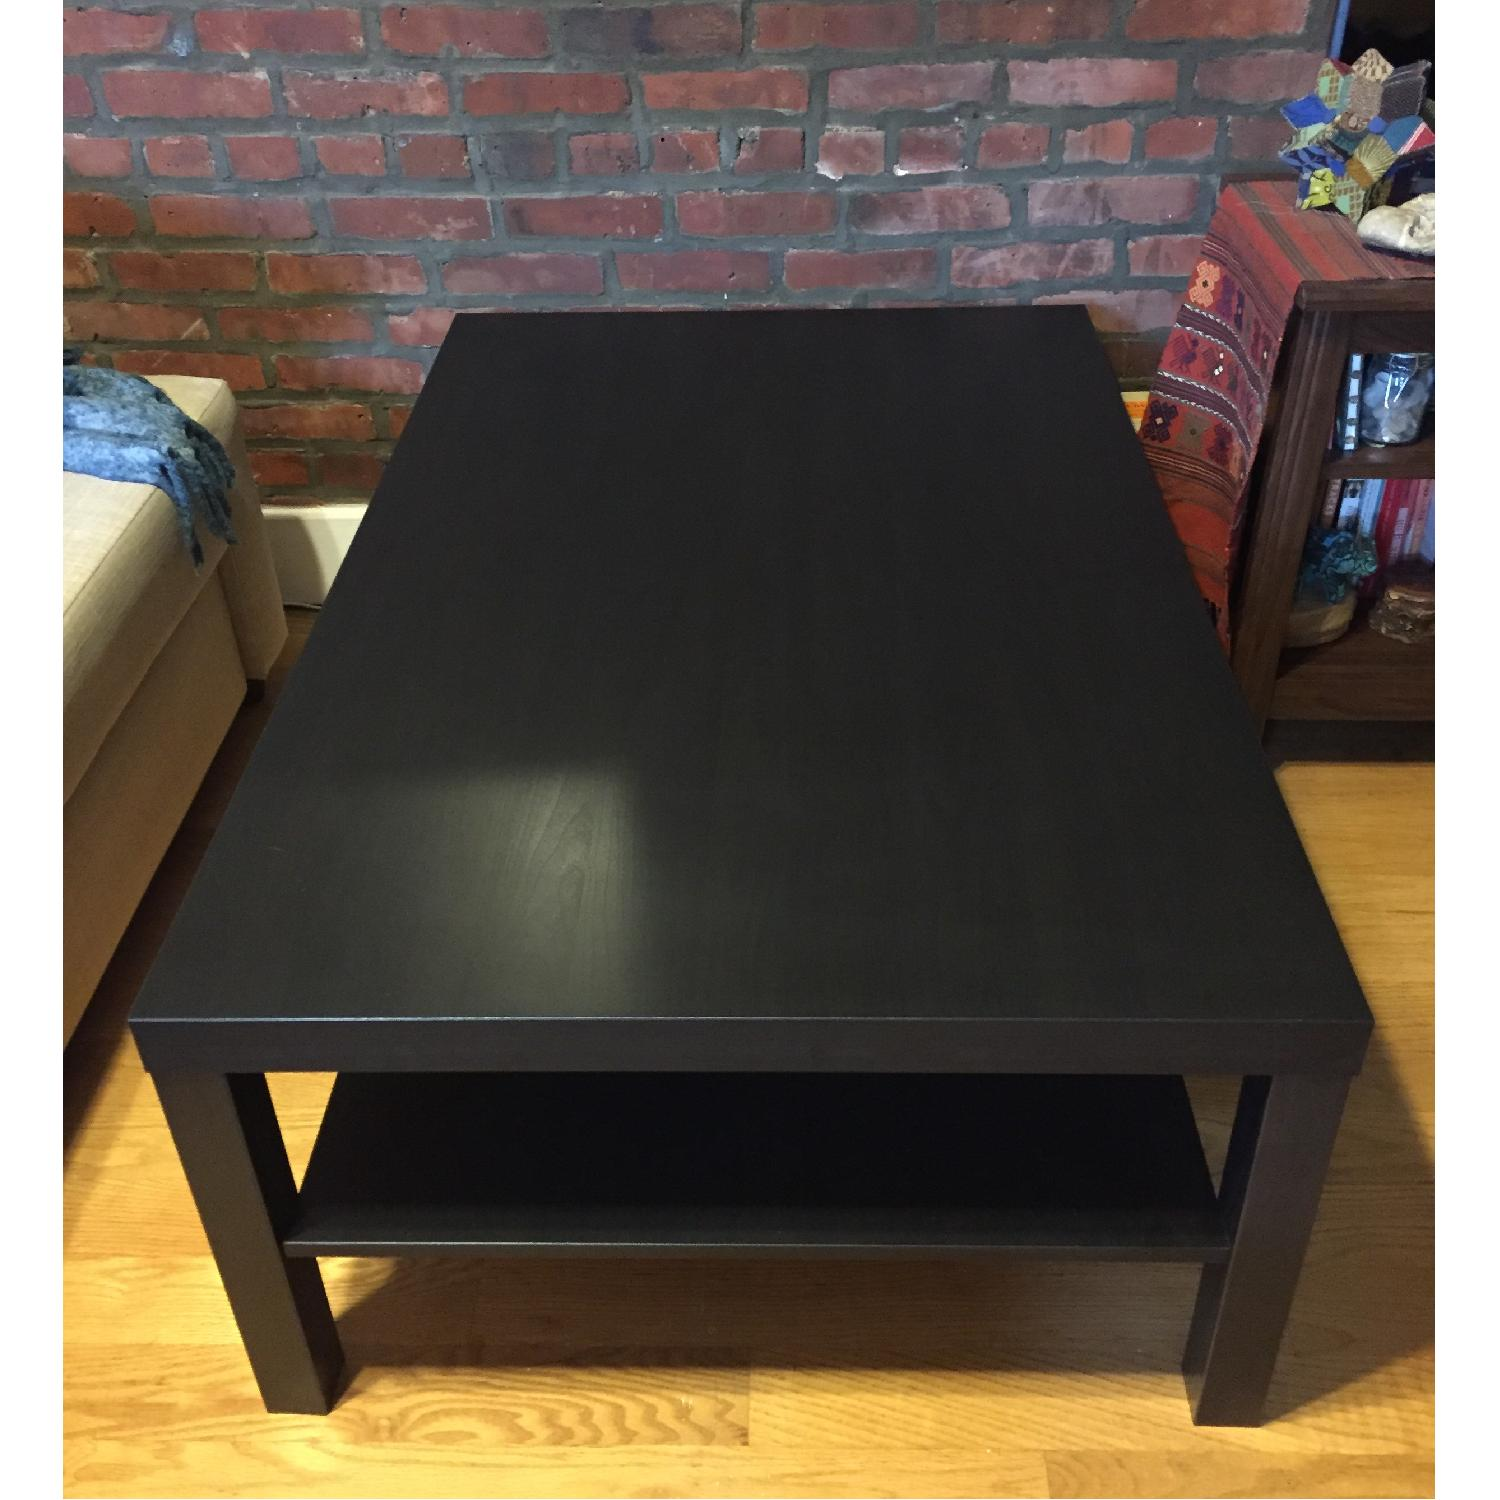 Ikea Lack Black Coffee Table - image-1